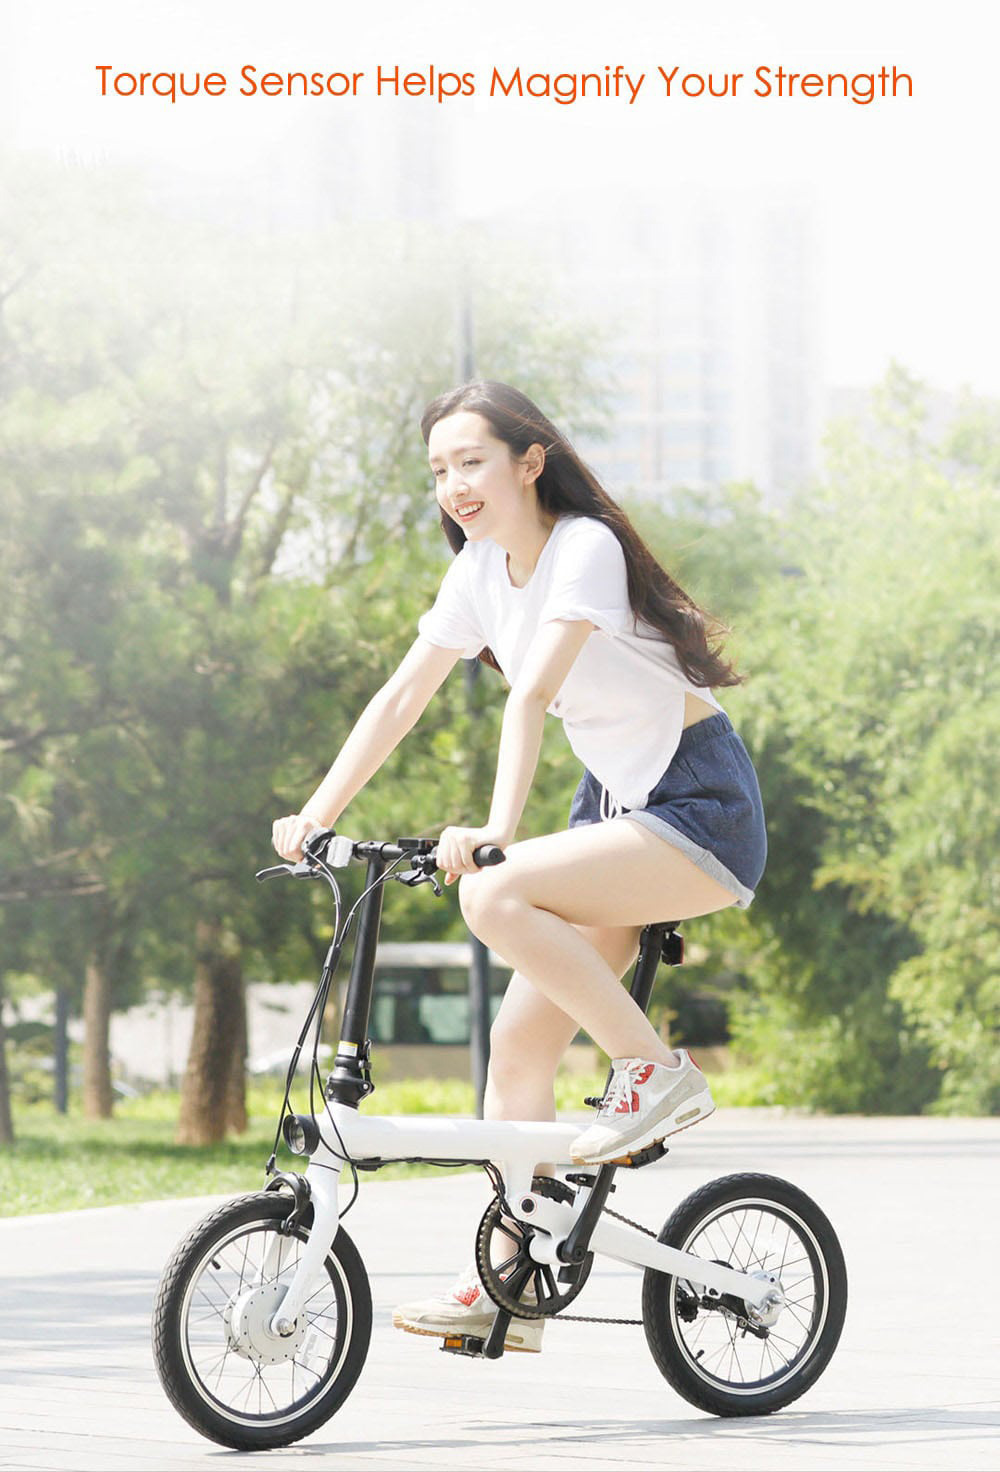 HTB1P78slcIrBKNjSZK9q6ygoVXaf - 16inch Origina XIAOMI electrical bike Qicycle EF1 Mini electrical Ebike good folding  bike lithium battery mijia  CITY EBIKE